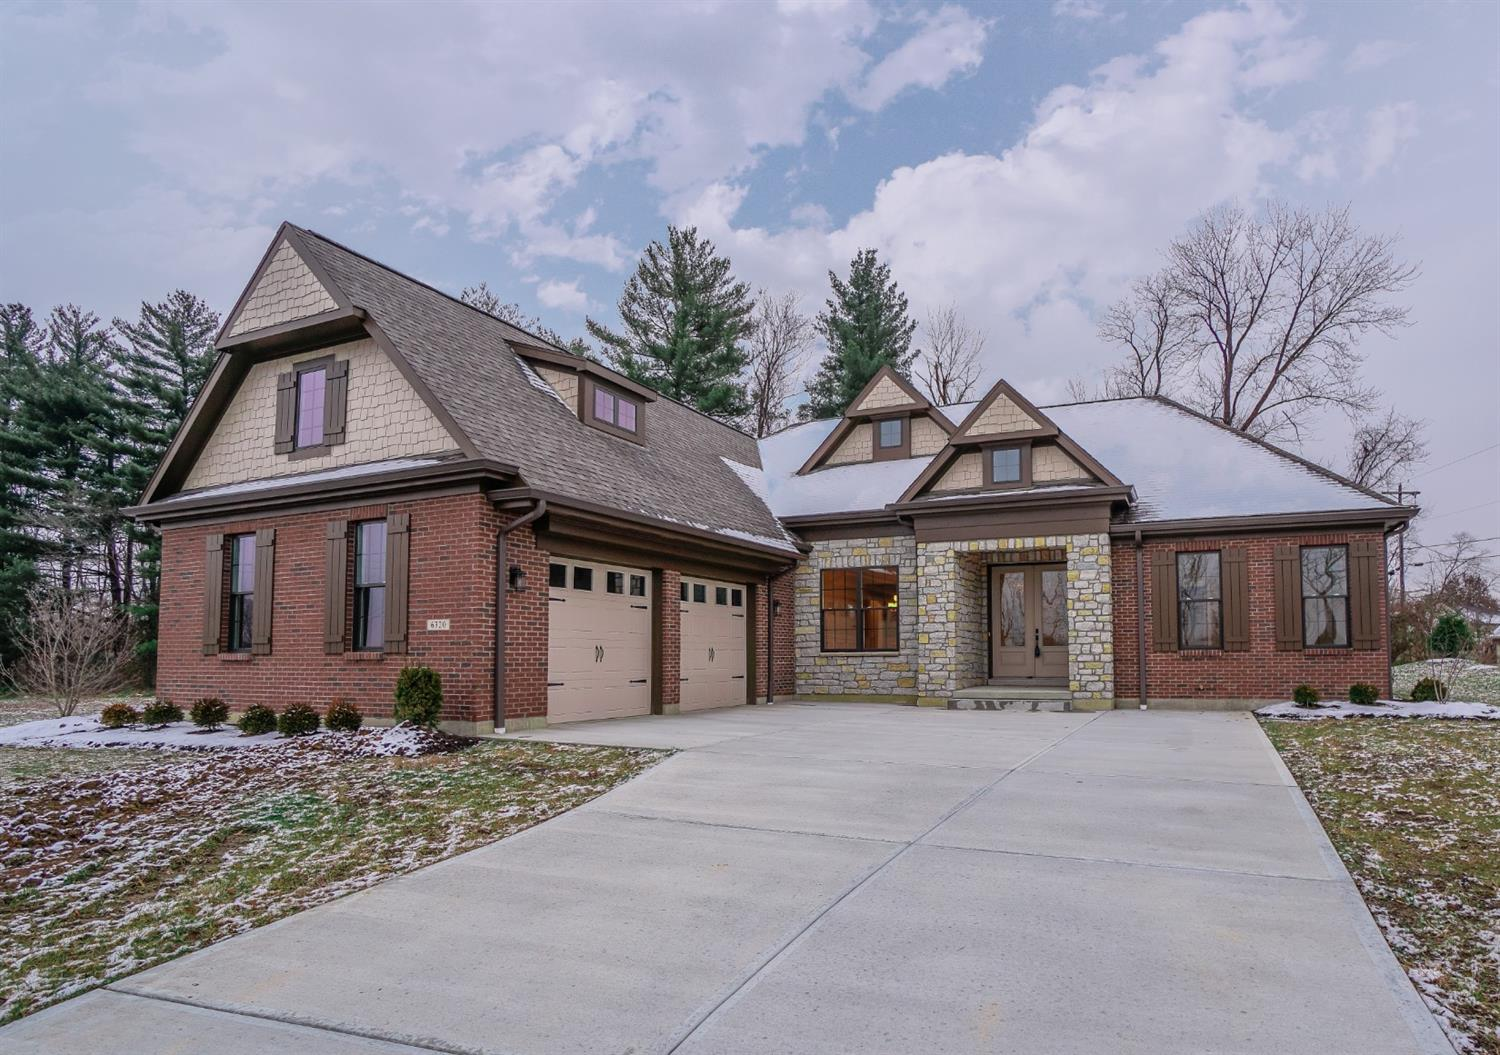 6320 Evergreen Ln Miami Twp. (East), OH